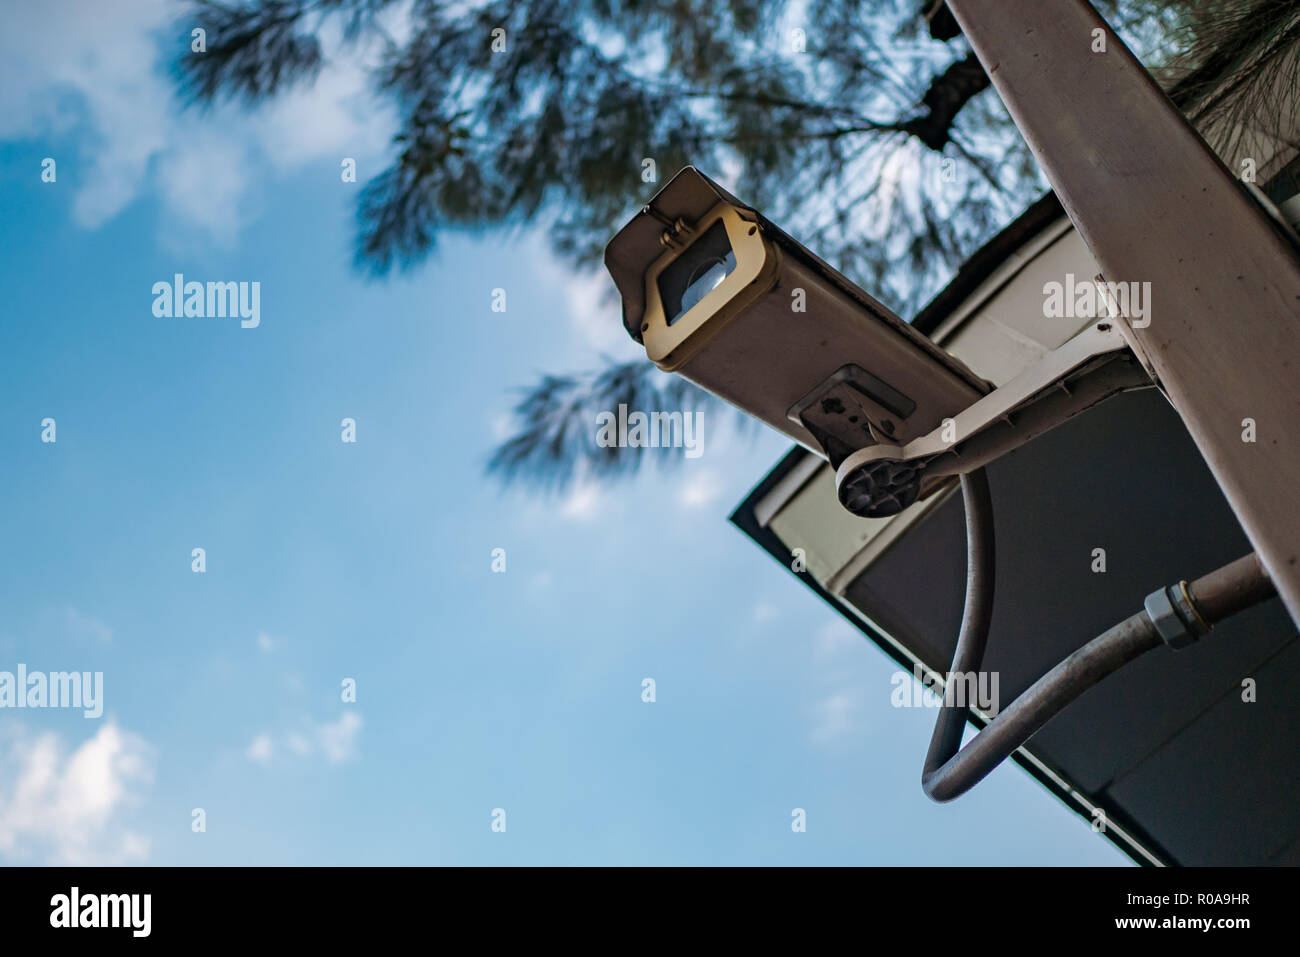 Surveillance camera in public space - Stock Image